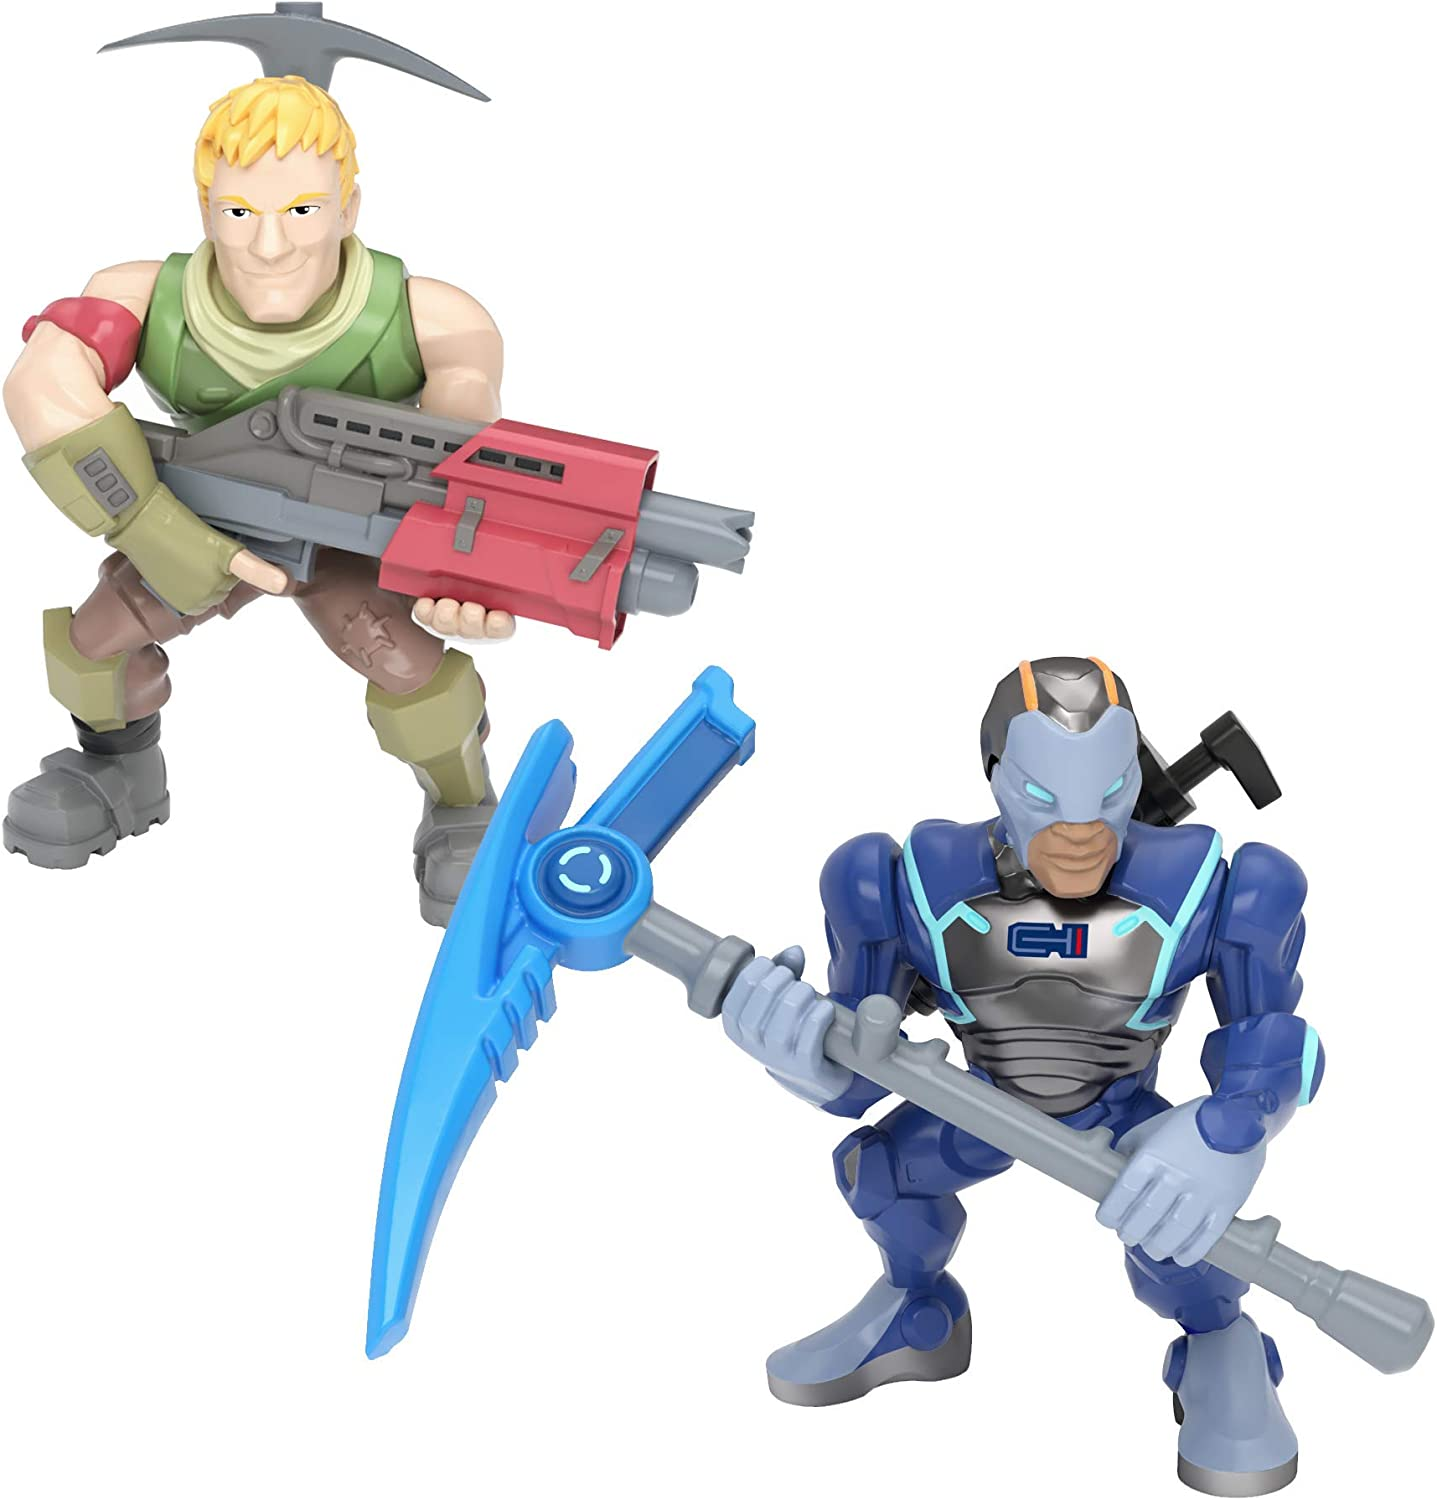 Amazon.com: Fortnite Battle Royale Collection: Carbide & Sergeant Jonesy -  2 Pack of Action Figures: Toys & Games